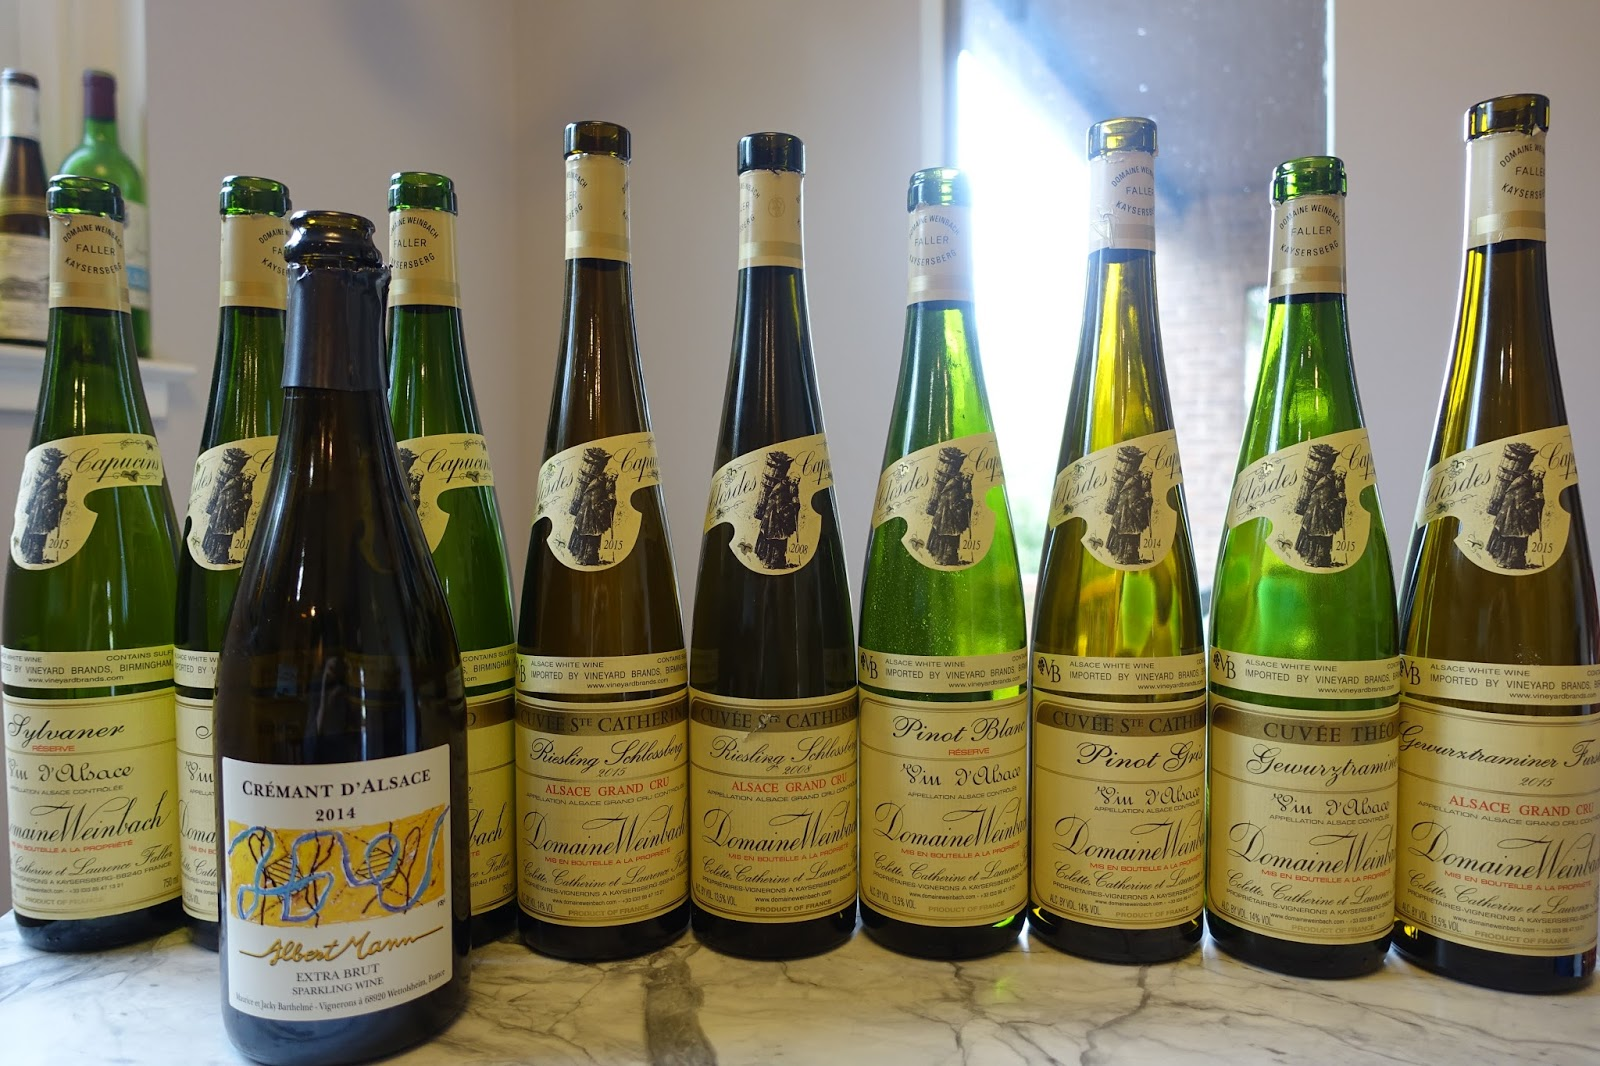 Wines of Alsace Twitter Tasting Wrap Up!